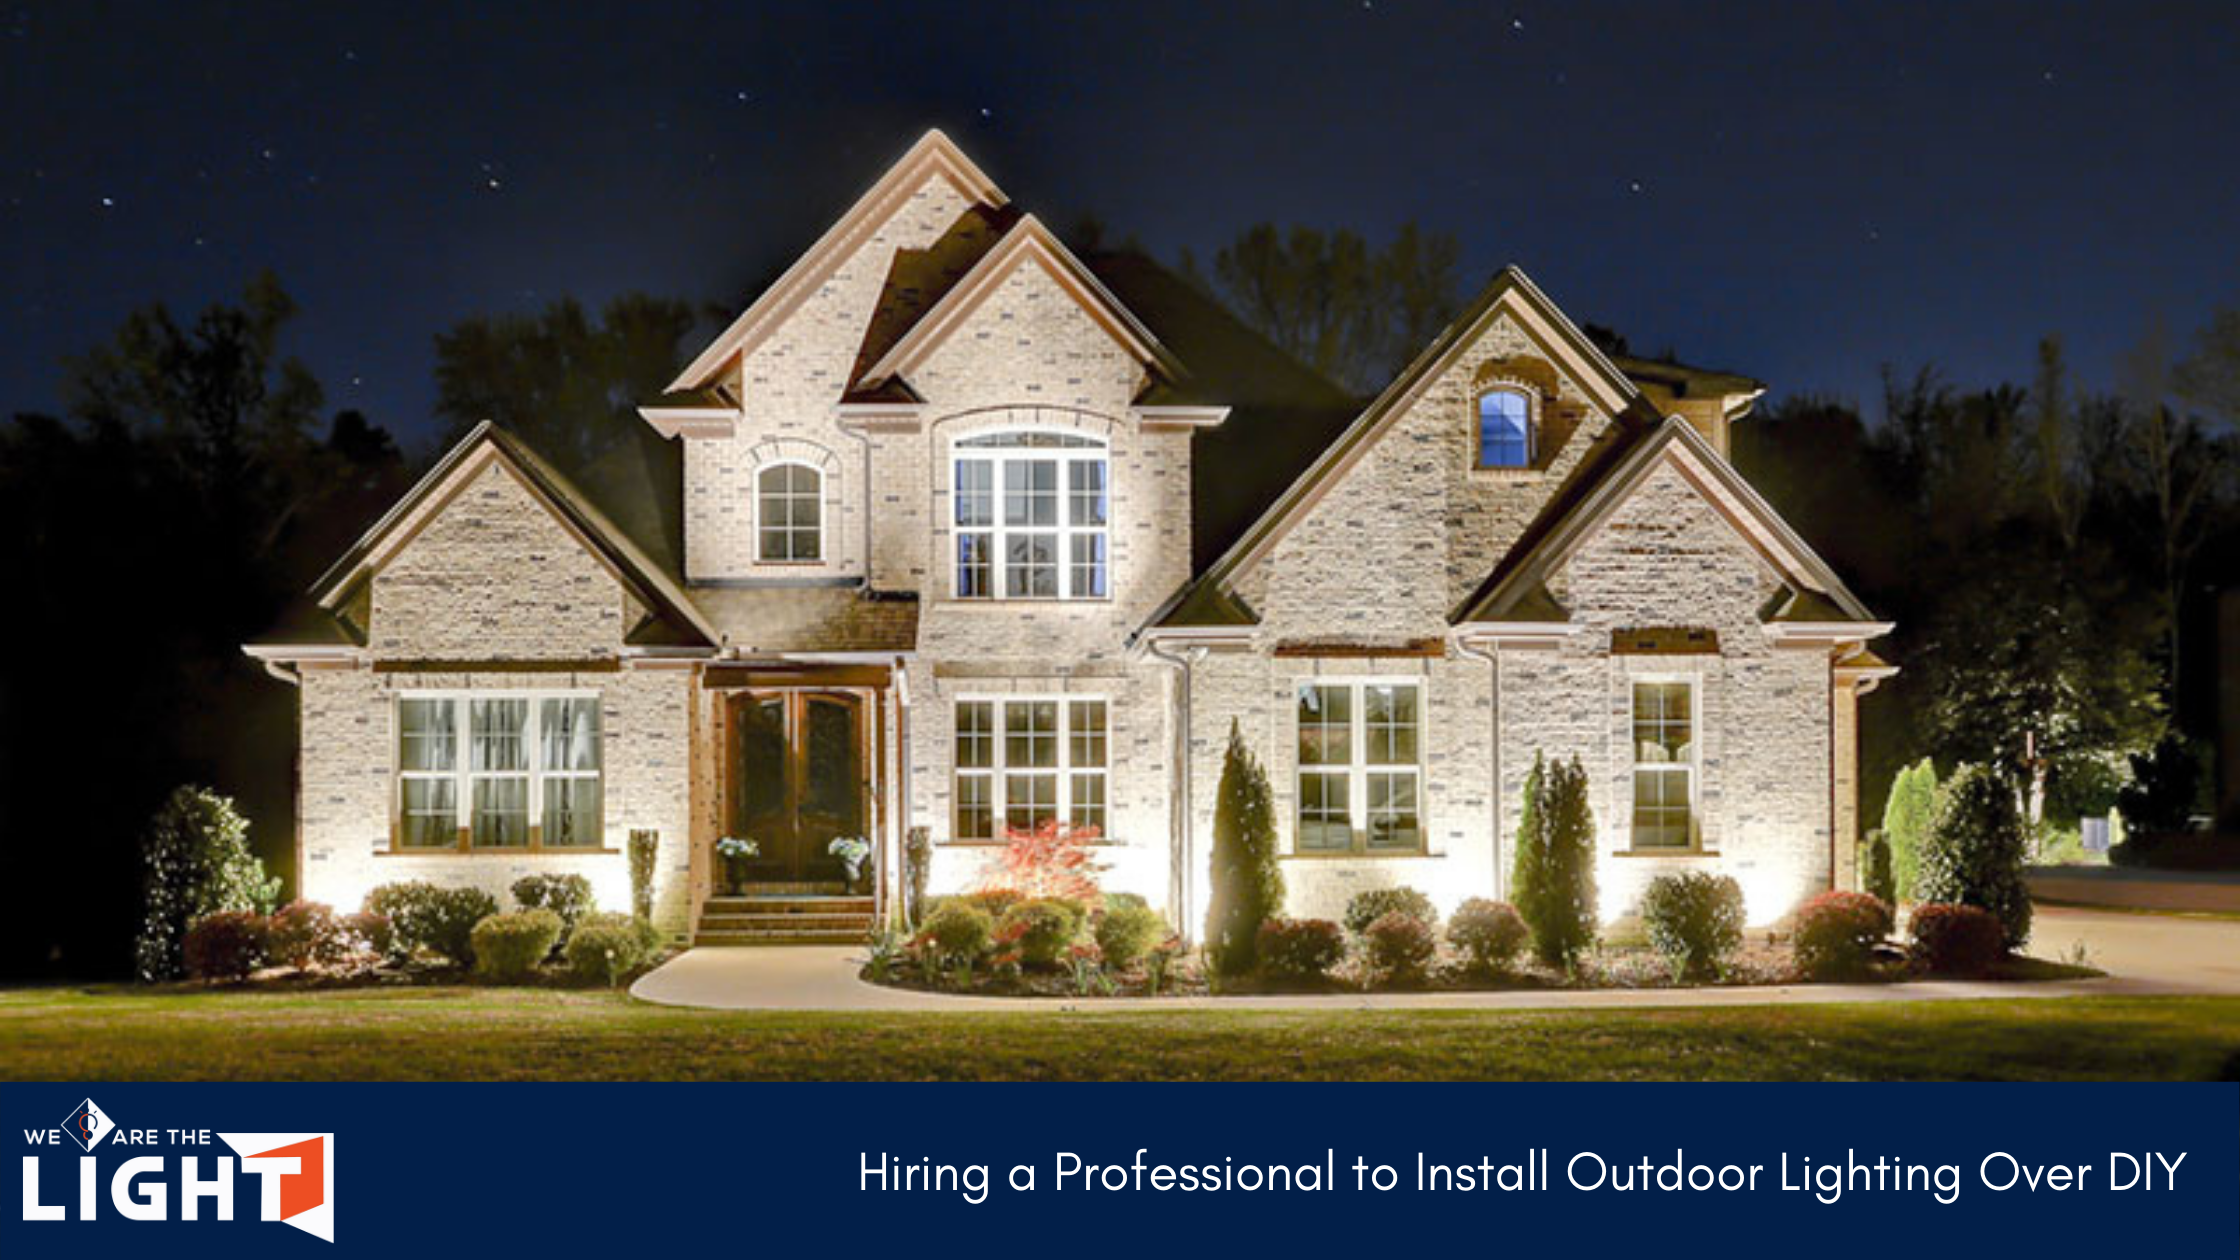 Professionally Installed Outdoor Lighting